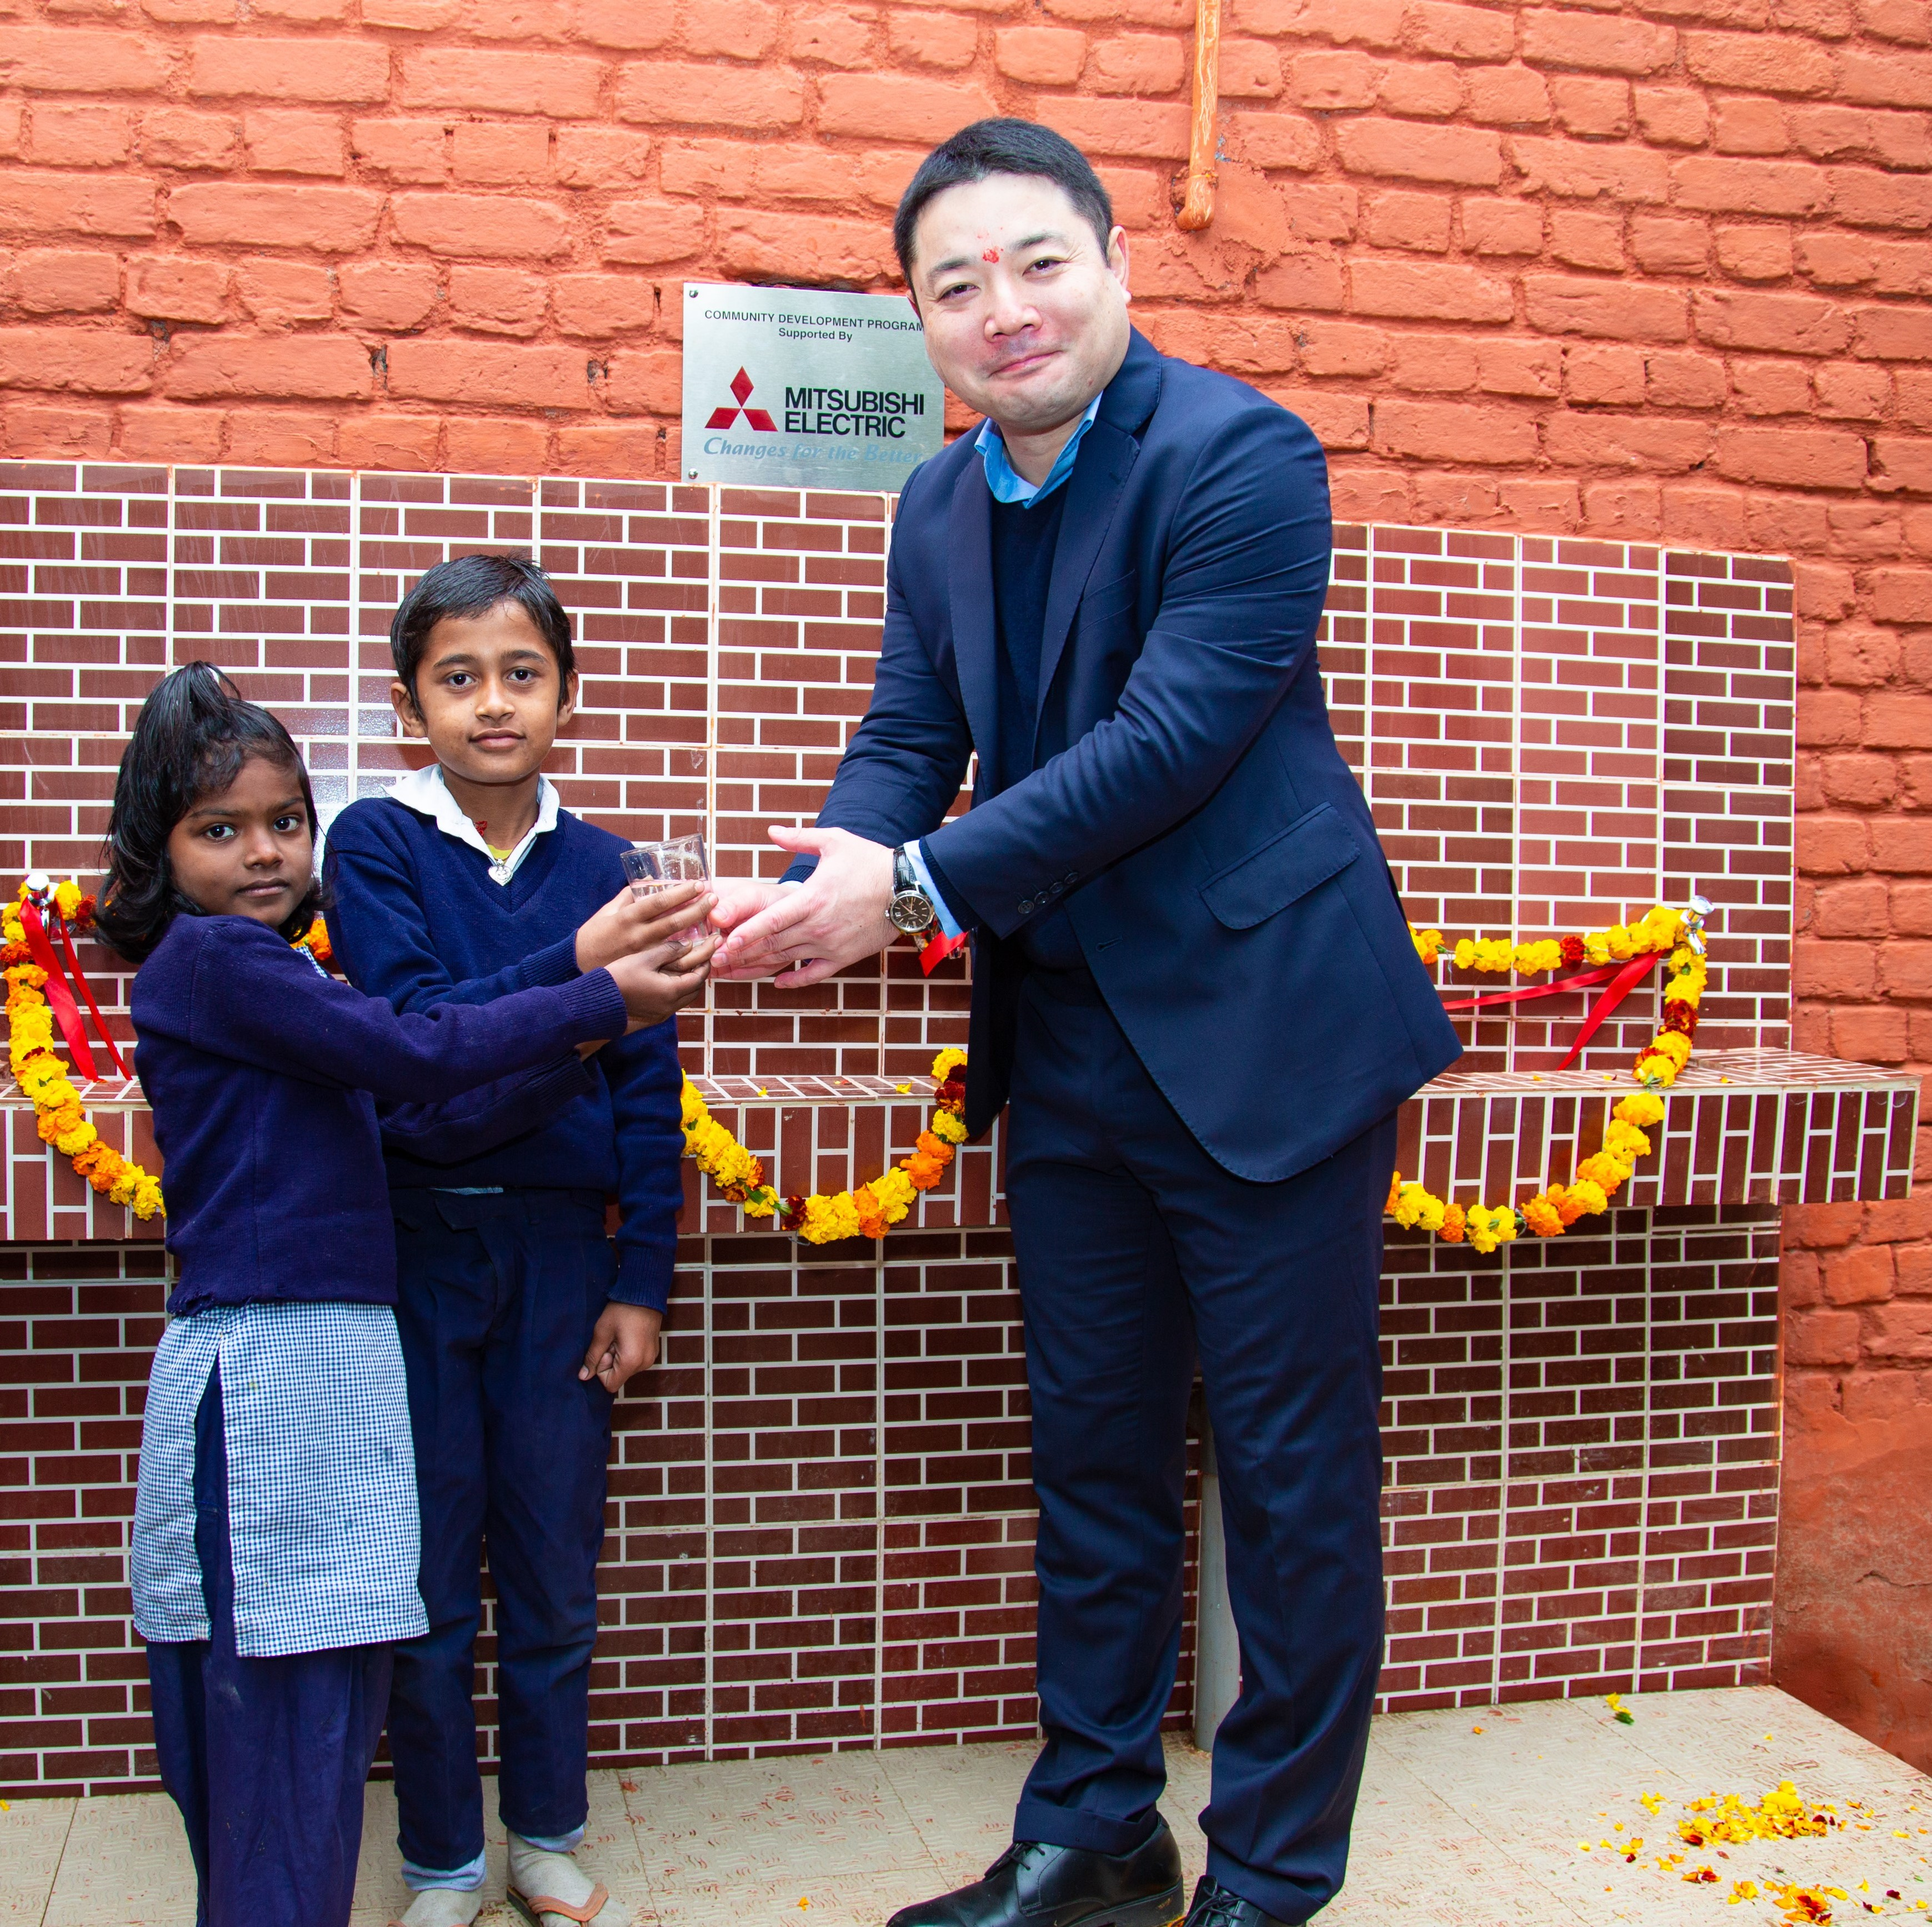 Mitsubishi Electric India extends Clean Drinking Water initiative in Faridabad